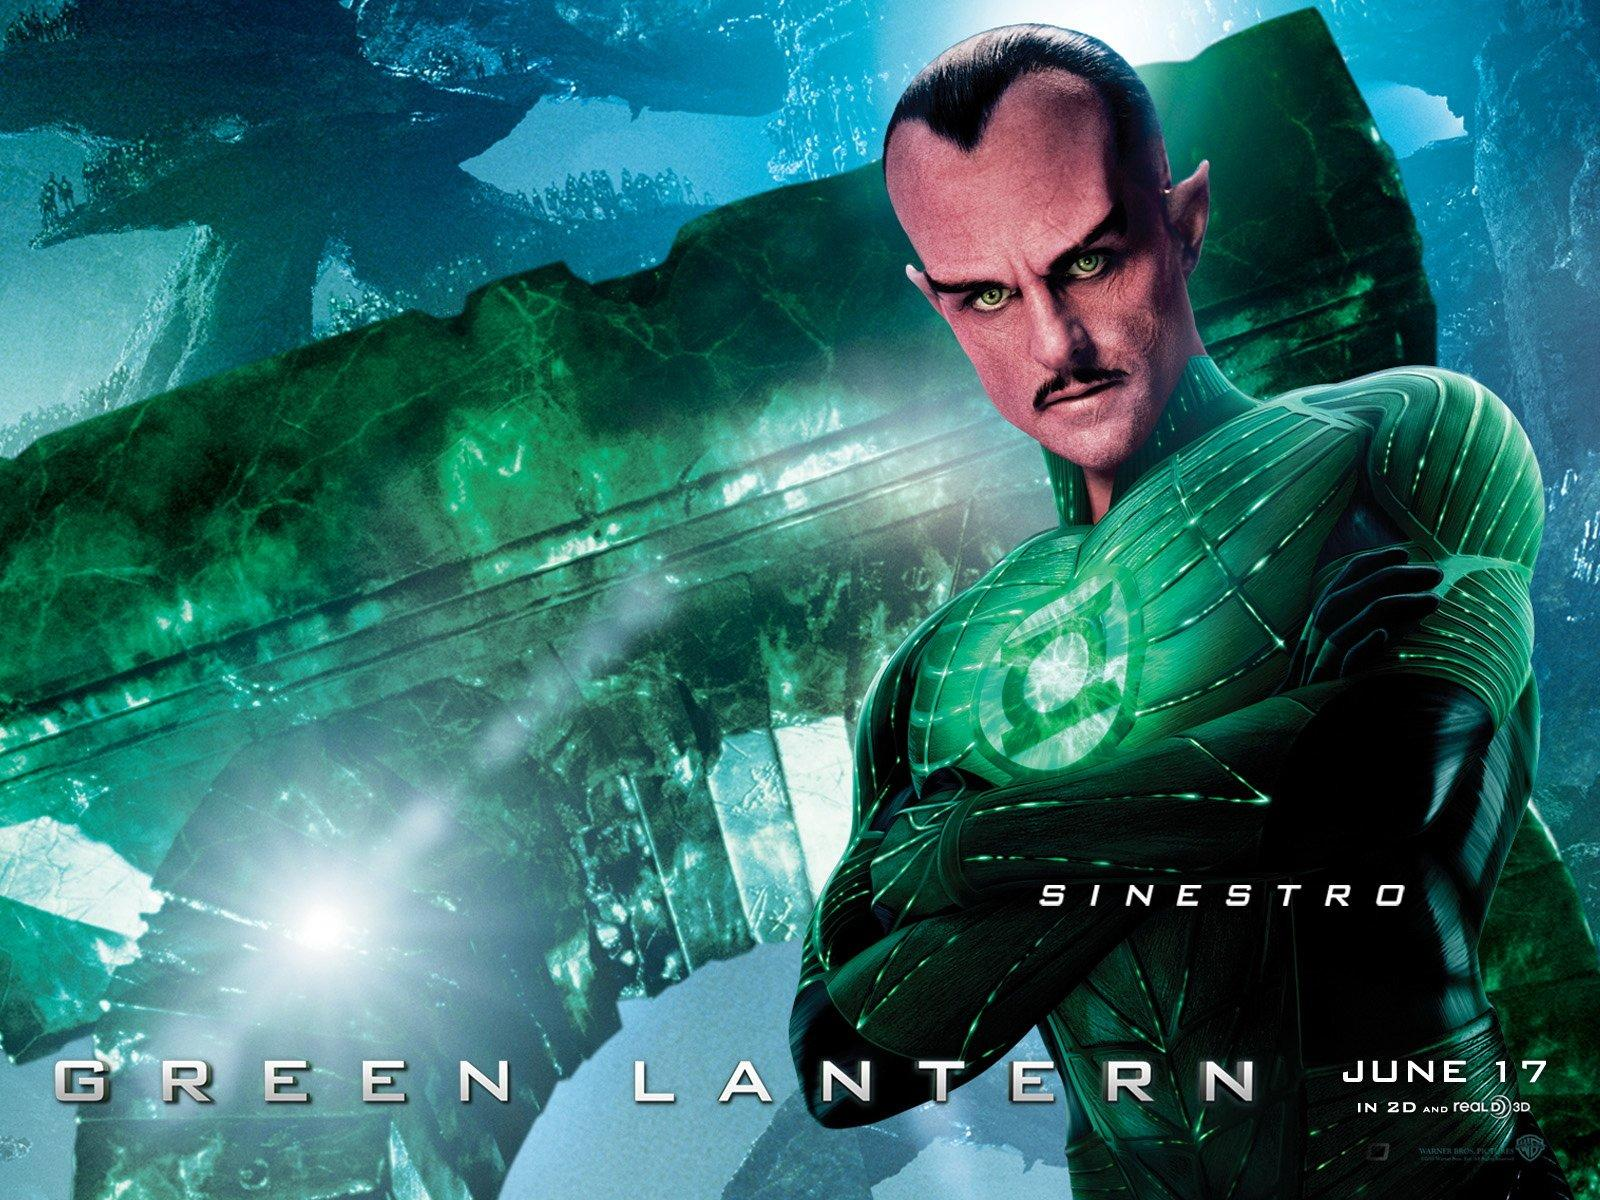 Green Lantern HD Wallpapers 1600x1200 Wallpapers 1600x1200 Wallpapers 1600x1200